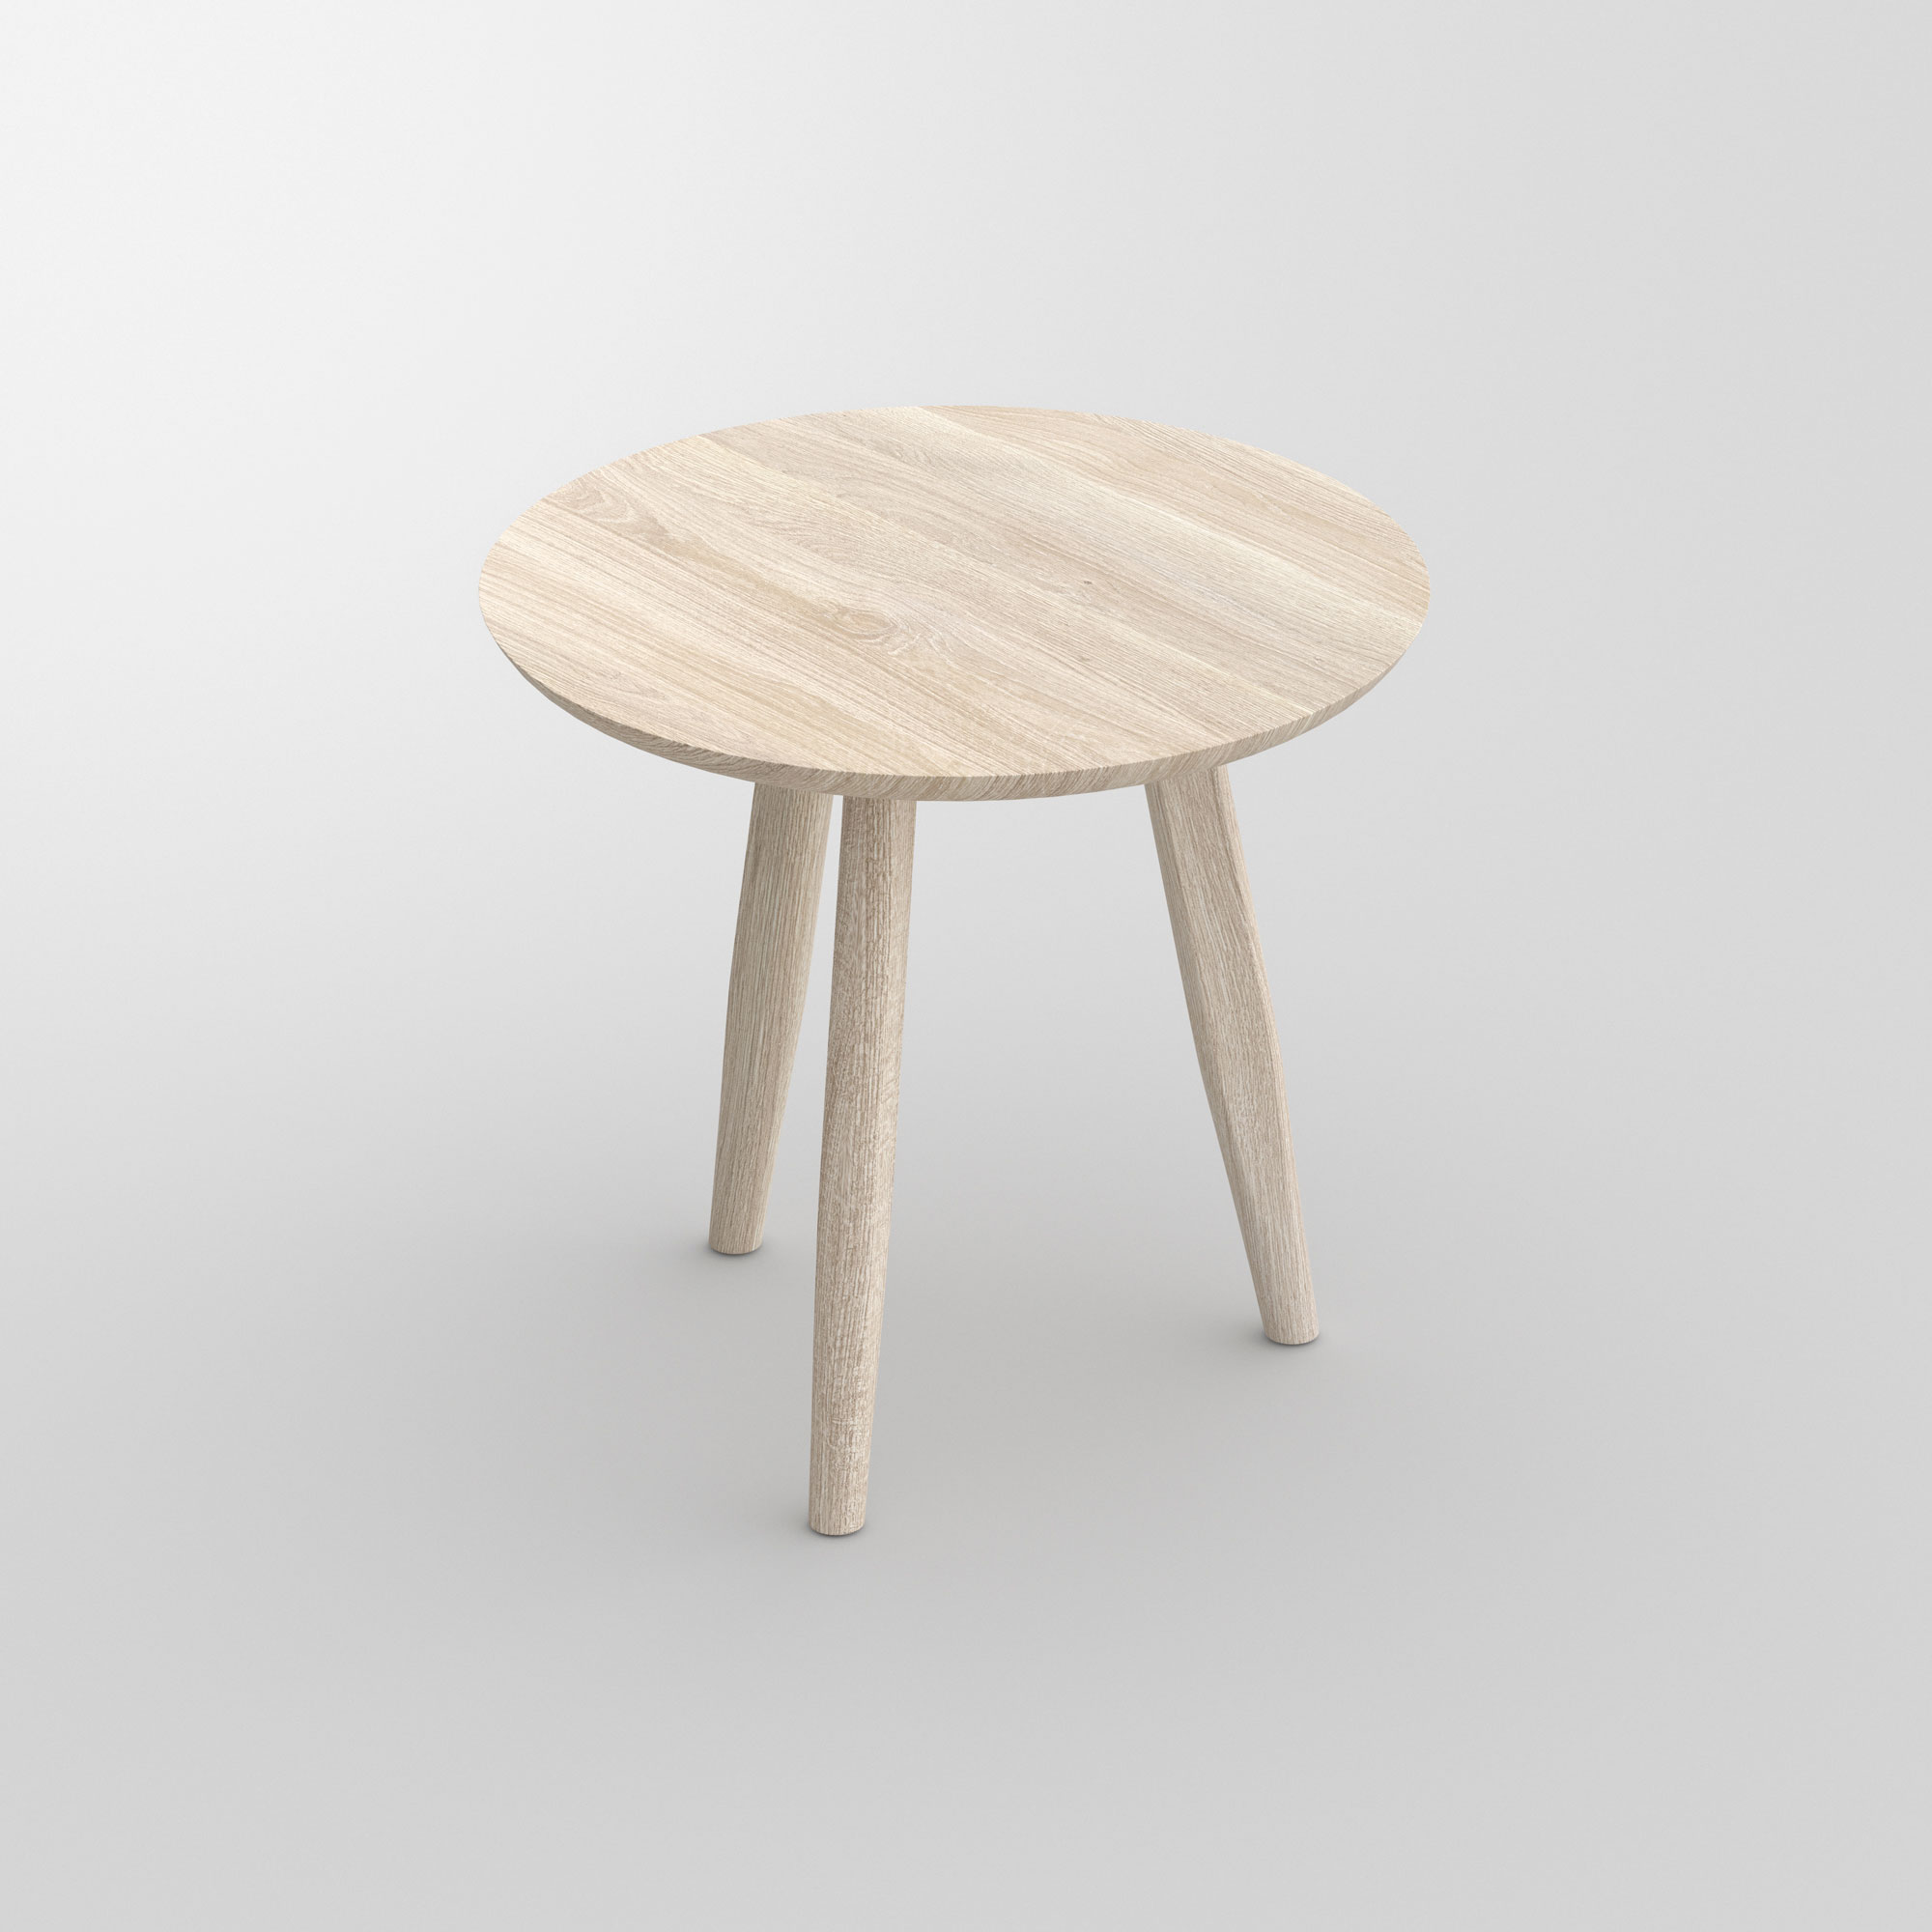 Round Night Table AETAS ROUND cam1 custom made in solid wood by vitamin design